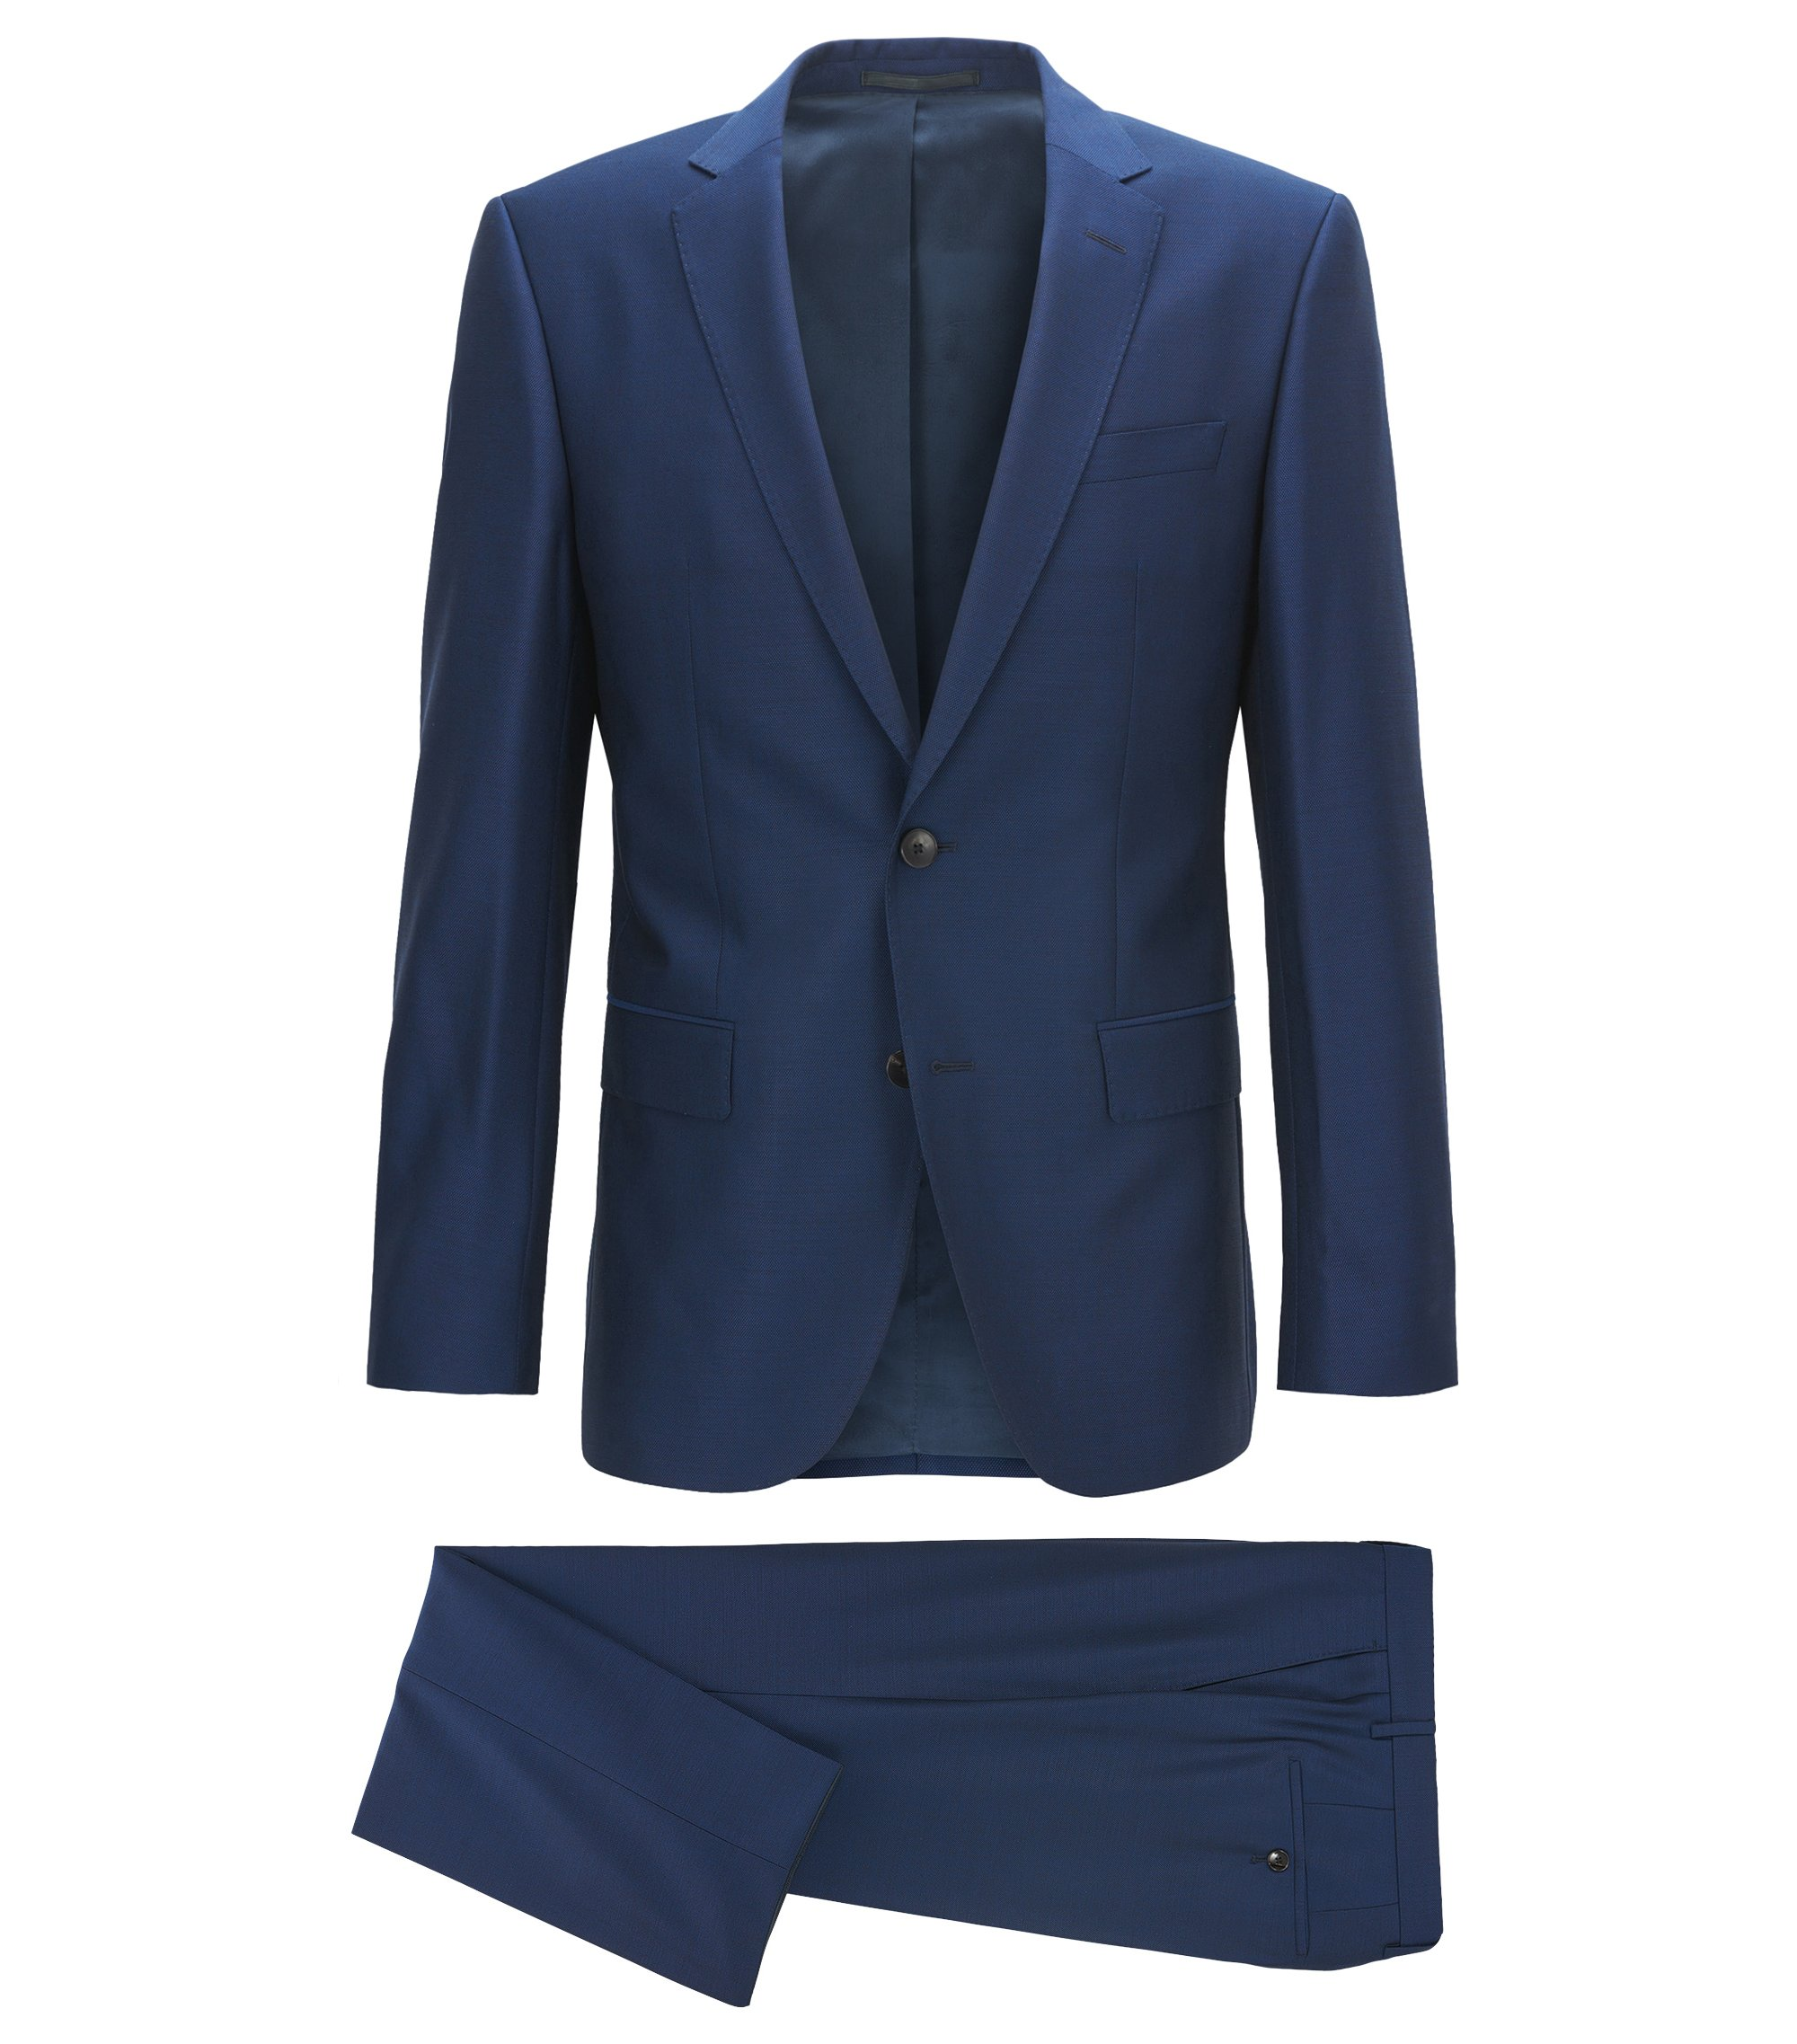 Abito slim fit in lana vergine con micromotivo , Blu scuro